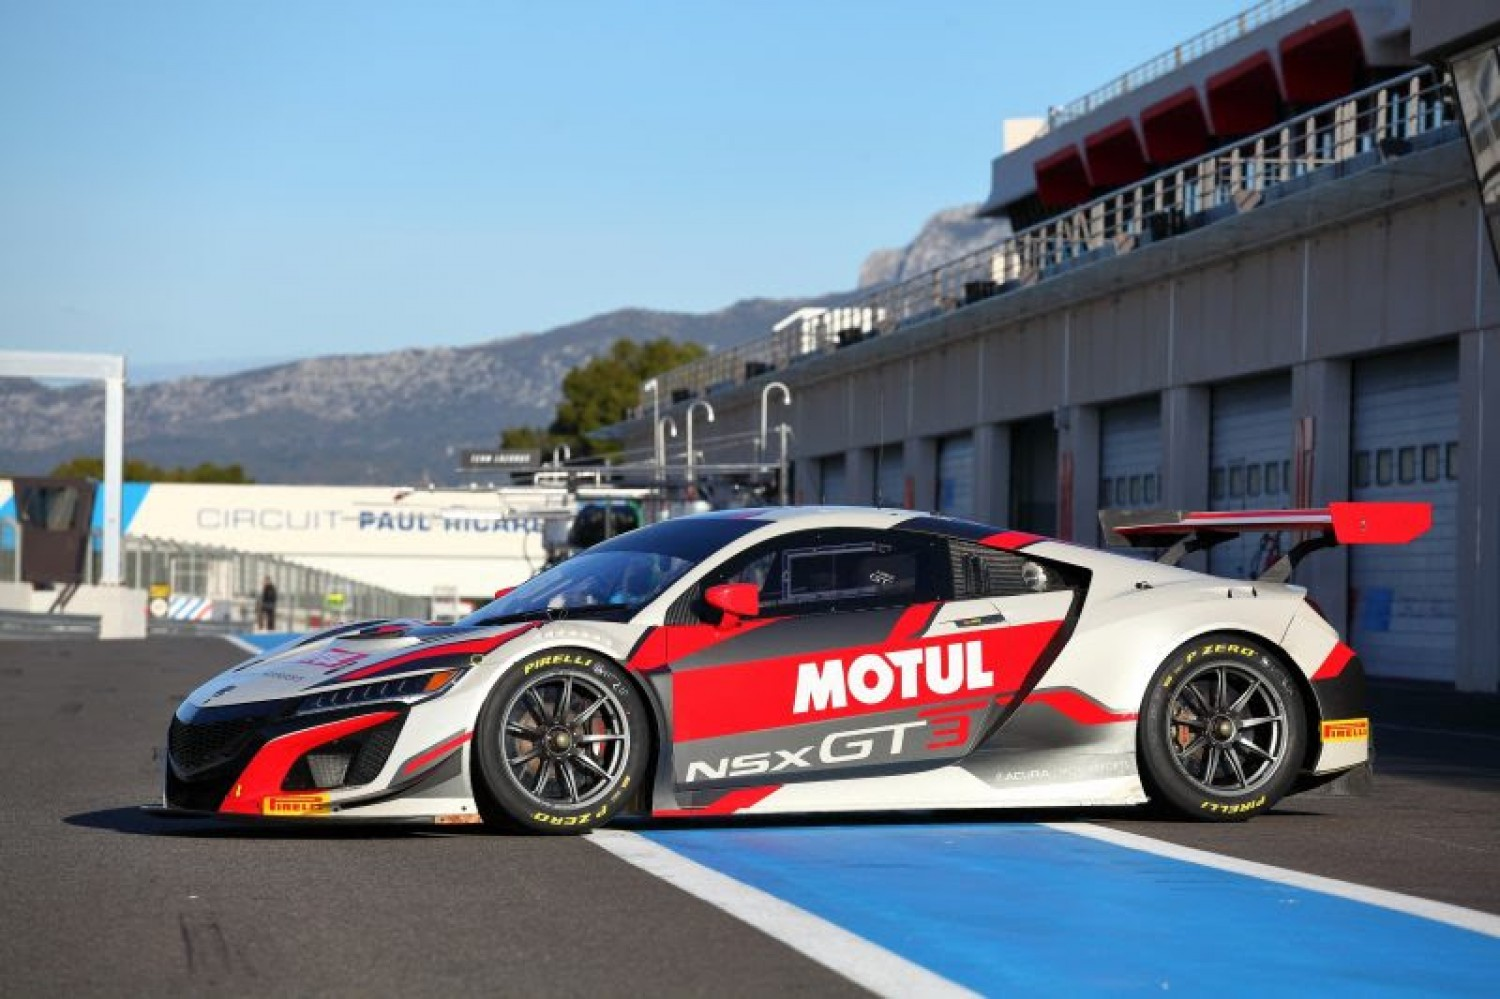 Honda Racing accelerates Spa preparations with strong test pace and Laguna Seca outing